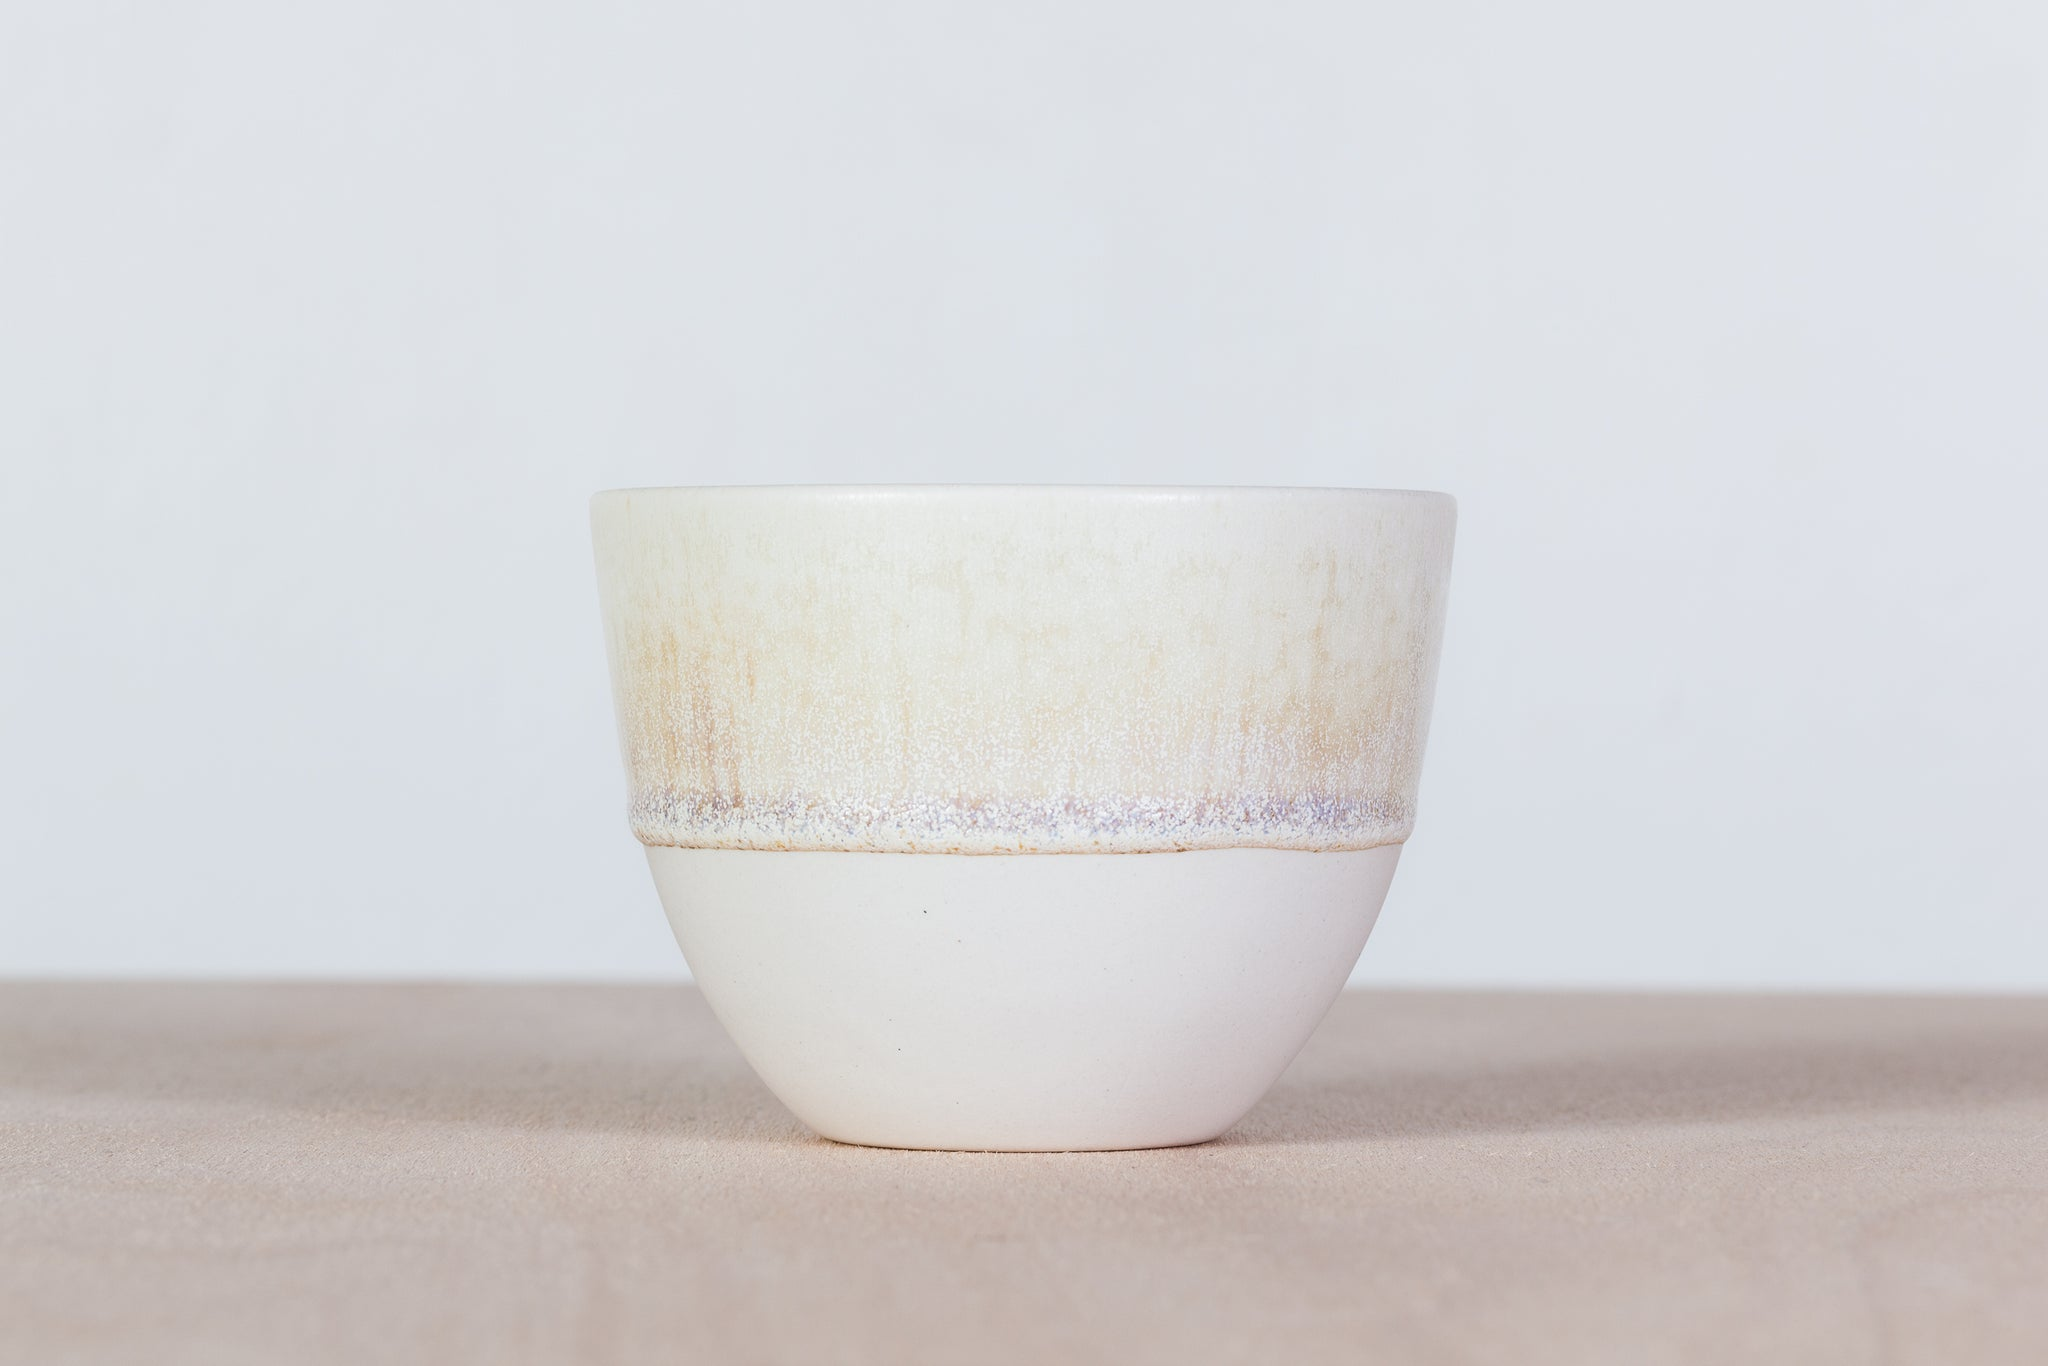 Simple cup with miracle glaze